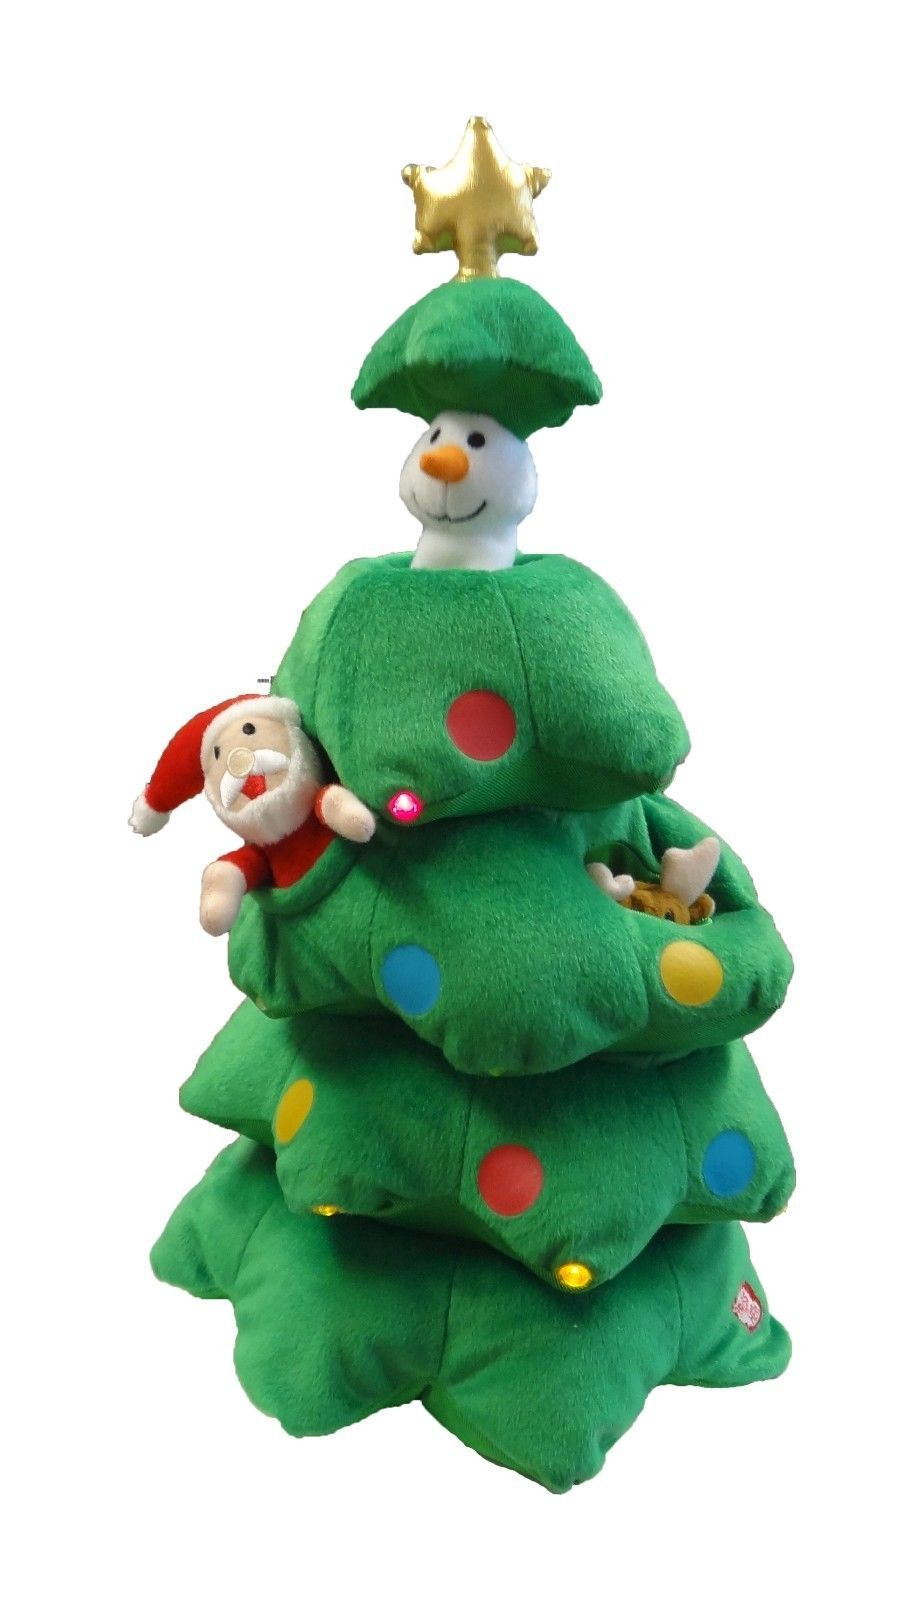 Cartoon Christmas Toys : Singing christmas tree animated plush toy musical reindeer